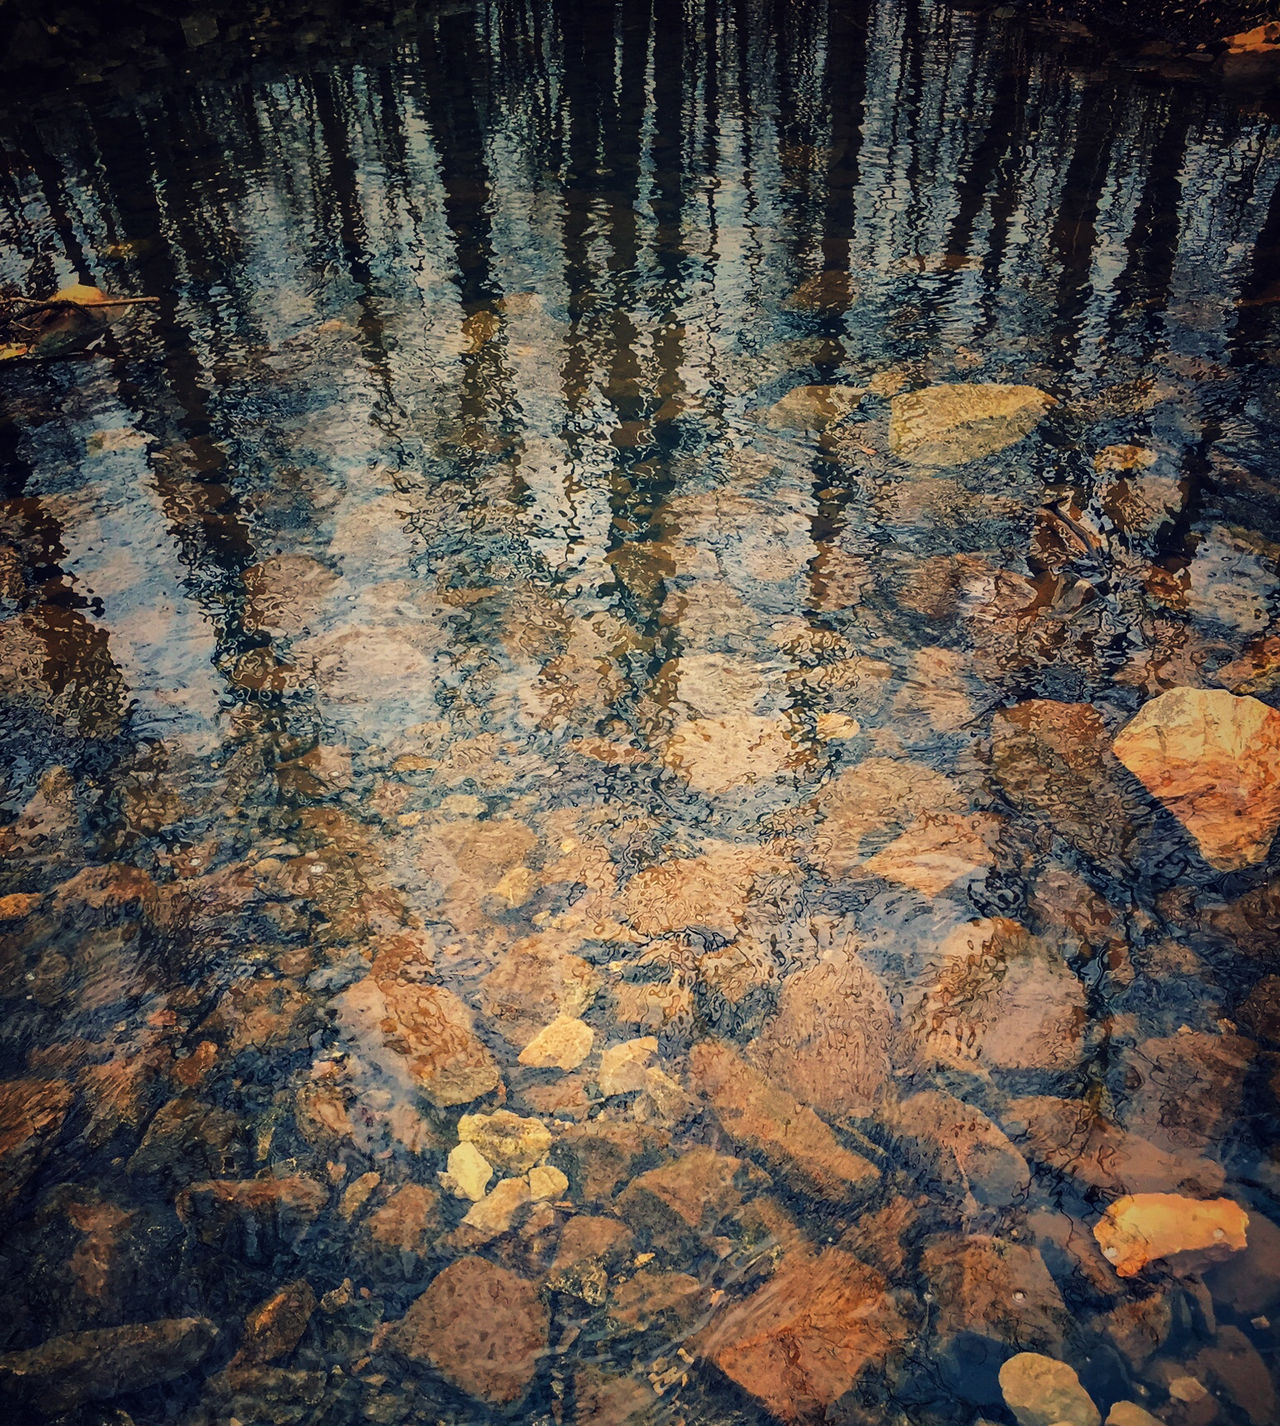 Trees Pointing in the Water Backgrounds Beauty In Nature Brown Contrast Dark And Light Day Full Frame Hiking Nature Nature Nature Photography No People Orange Outdoor Photography Outdoors Reflection Rocks Rocks And Water Scenics Tranquil Scene Tranquility Trees Under Water Water Water Reflections